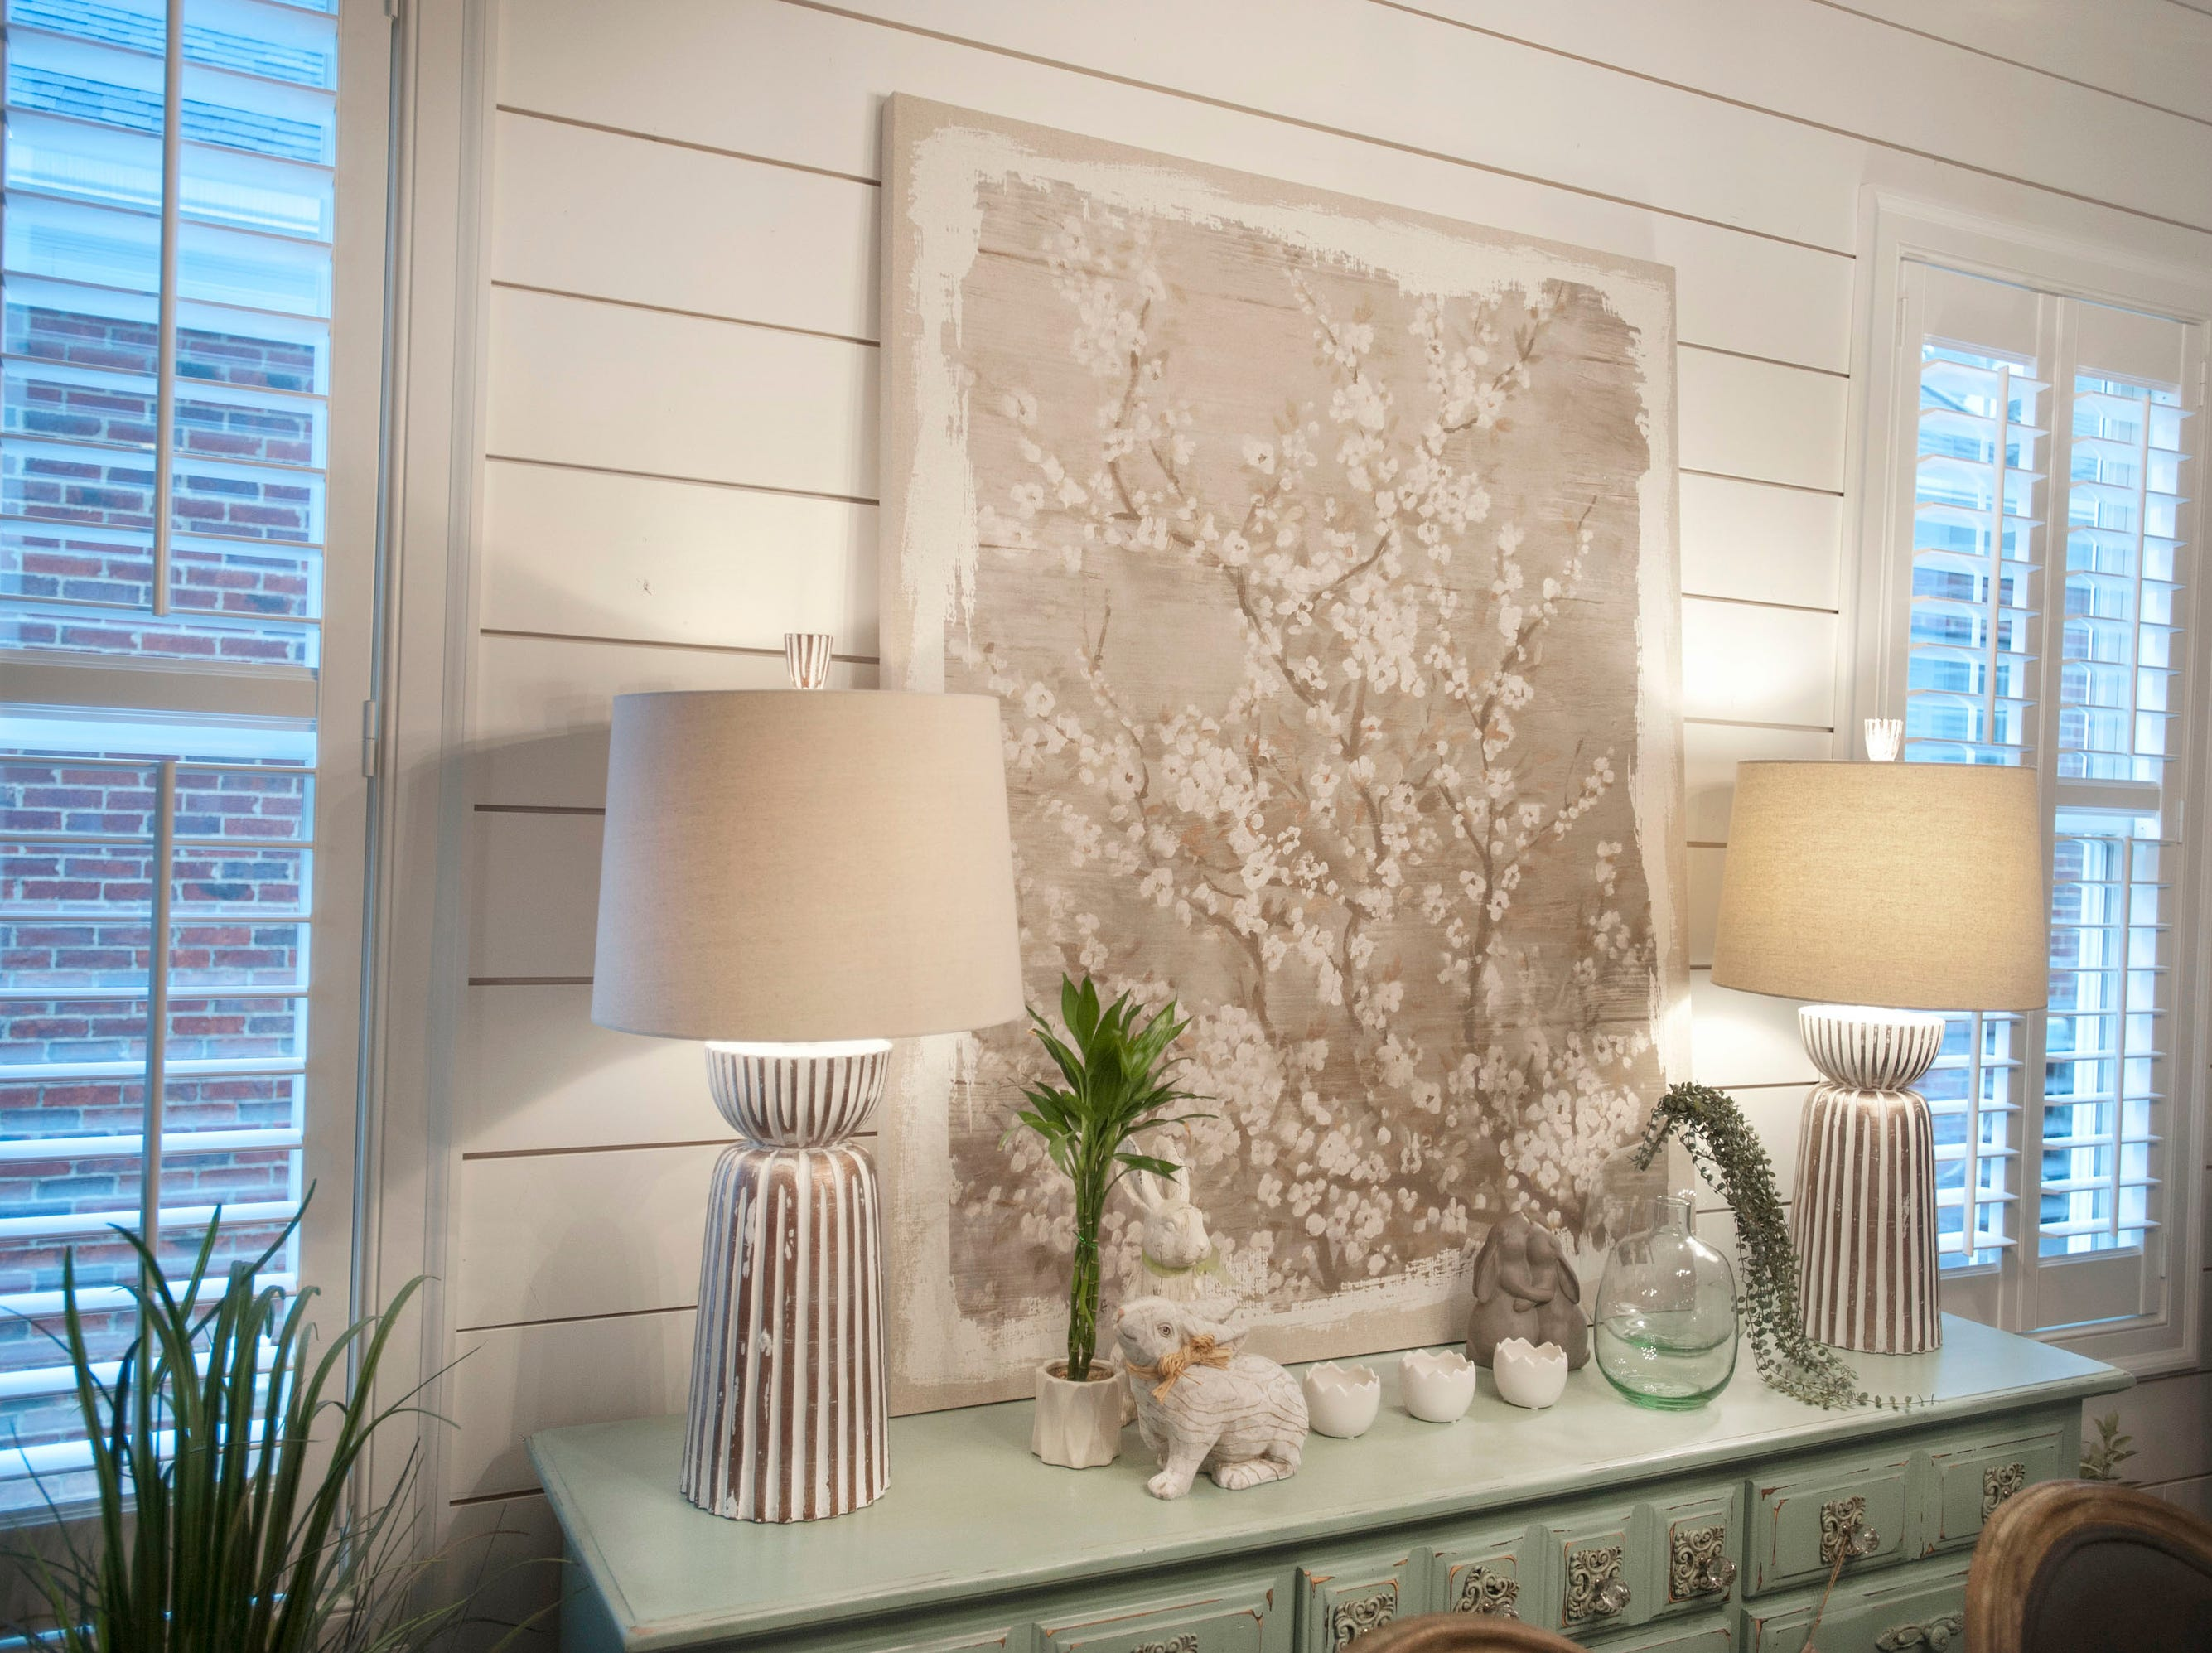 The wall of the Hannah dining room in Norton Commons, is decorated with shiplap, a feature found in several locations of the home.01 March 2019